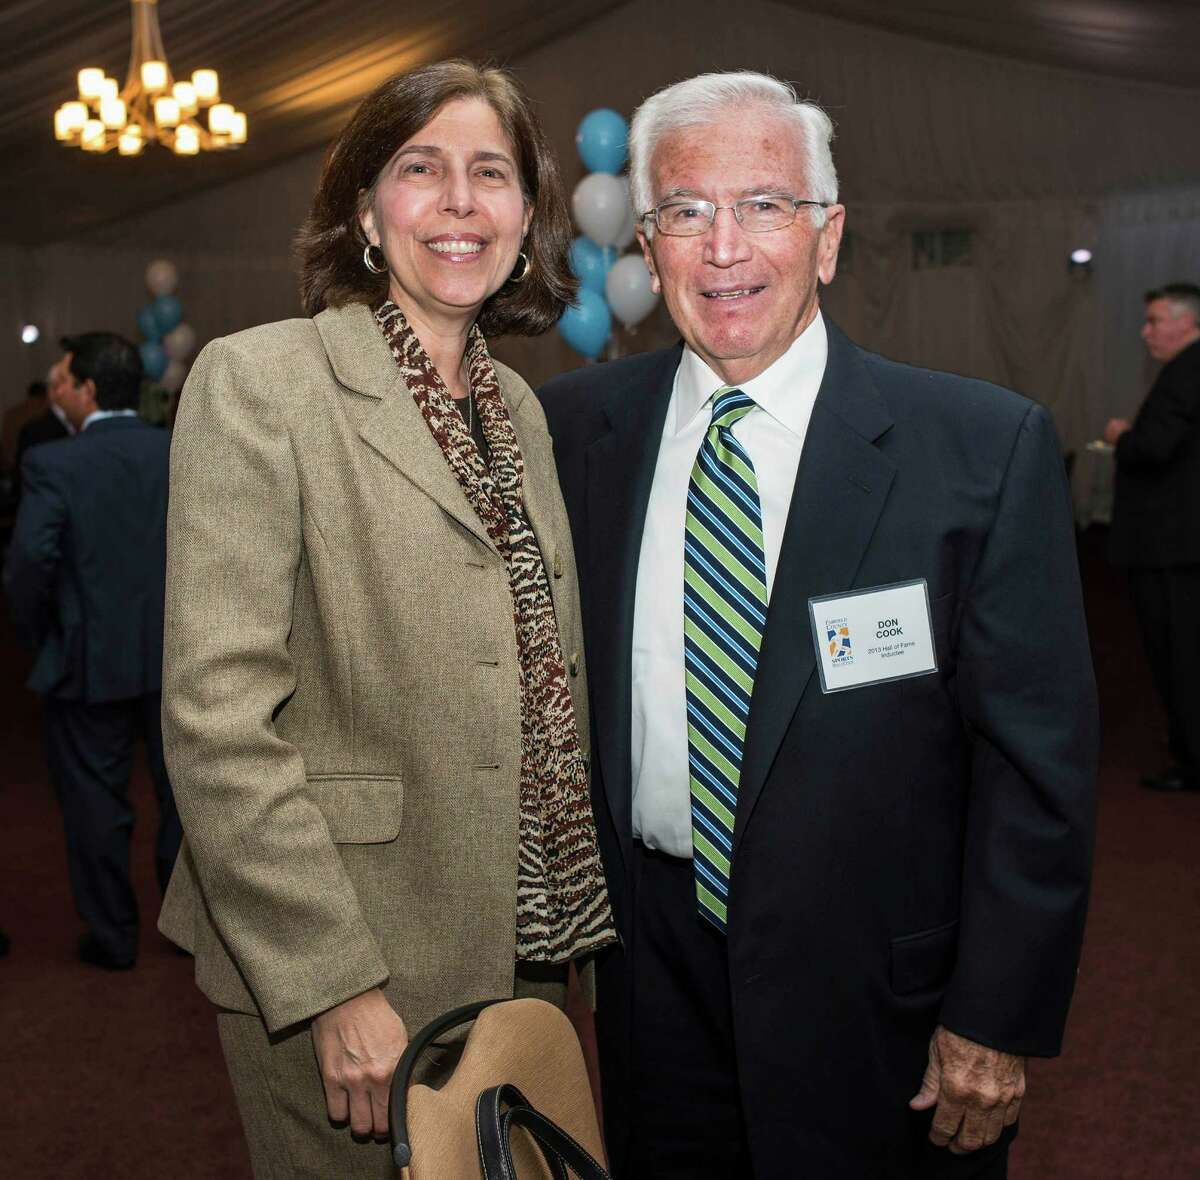 Community service award winner, Don Cook with Janet Canepa at the 9th annual Fairfield County Sports Hall of Fame Sports Night held at the Greenwich Hyatt Regency, Greenwich, CT on Monday, October, 21st, 2013.